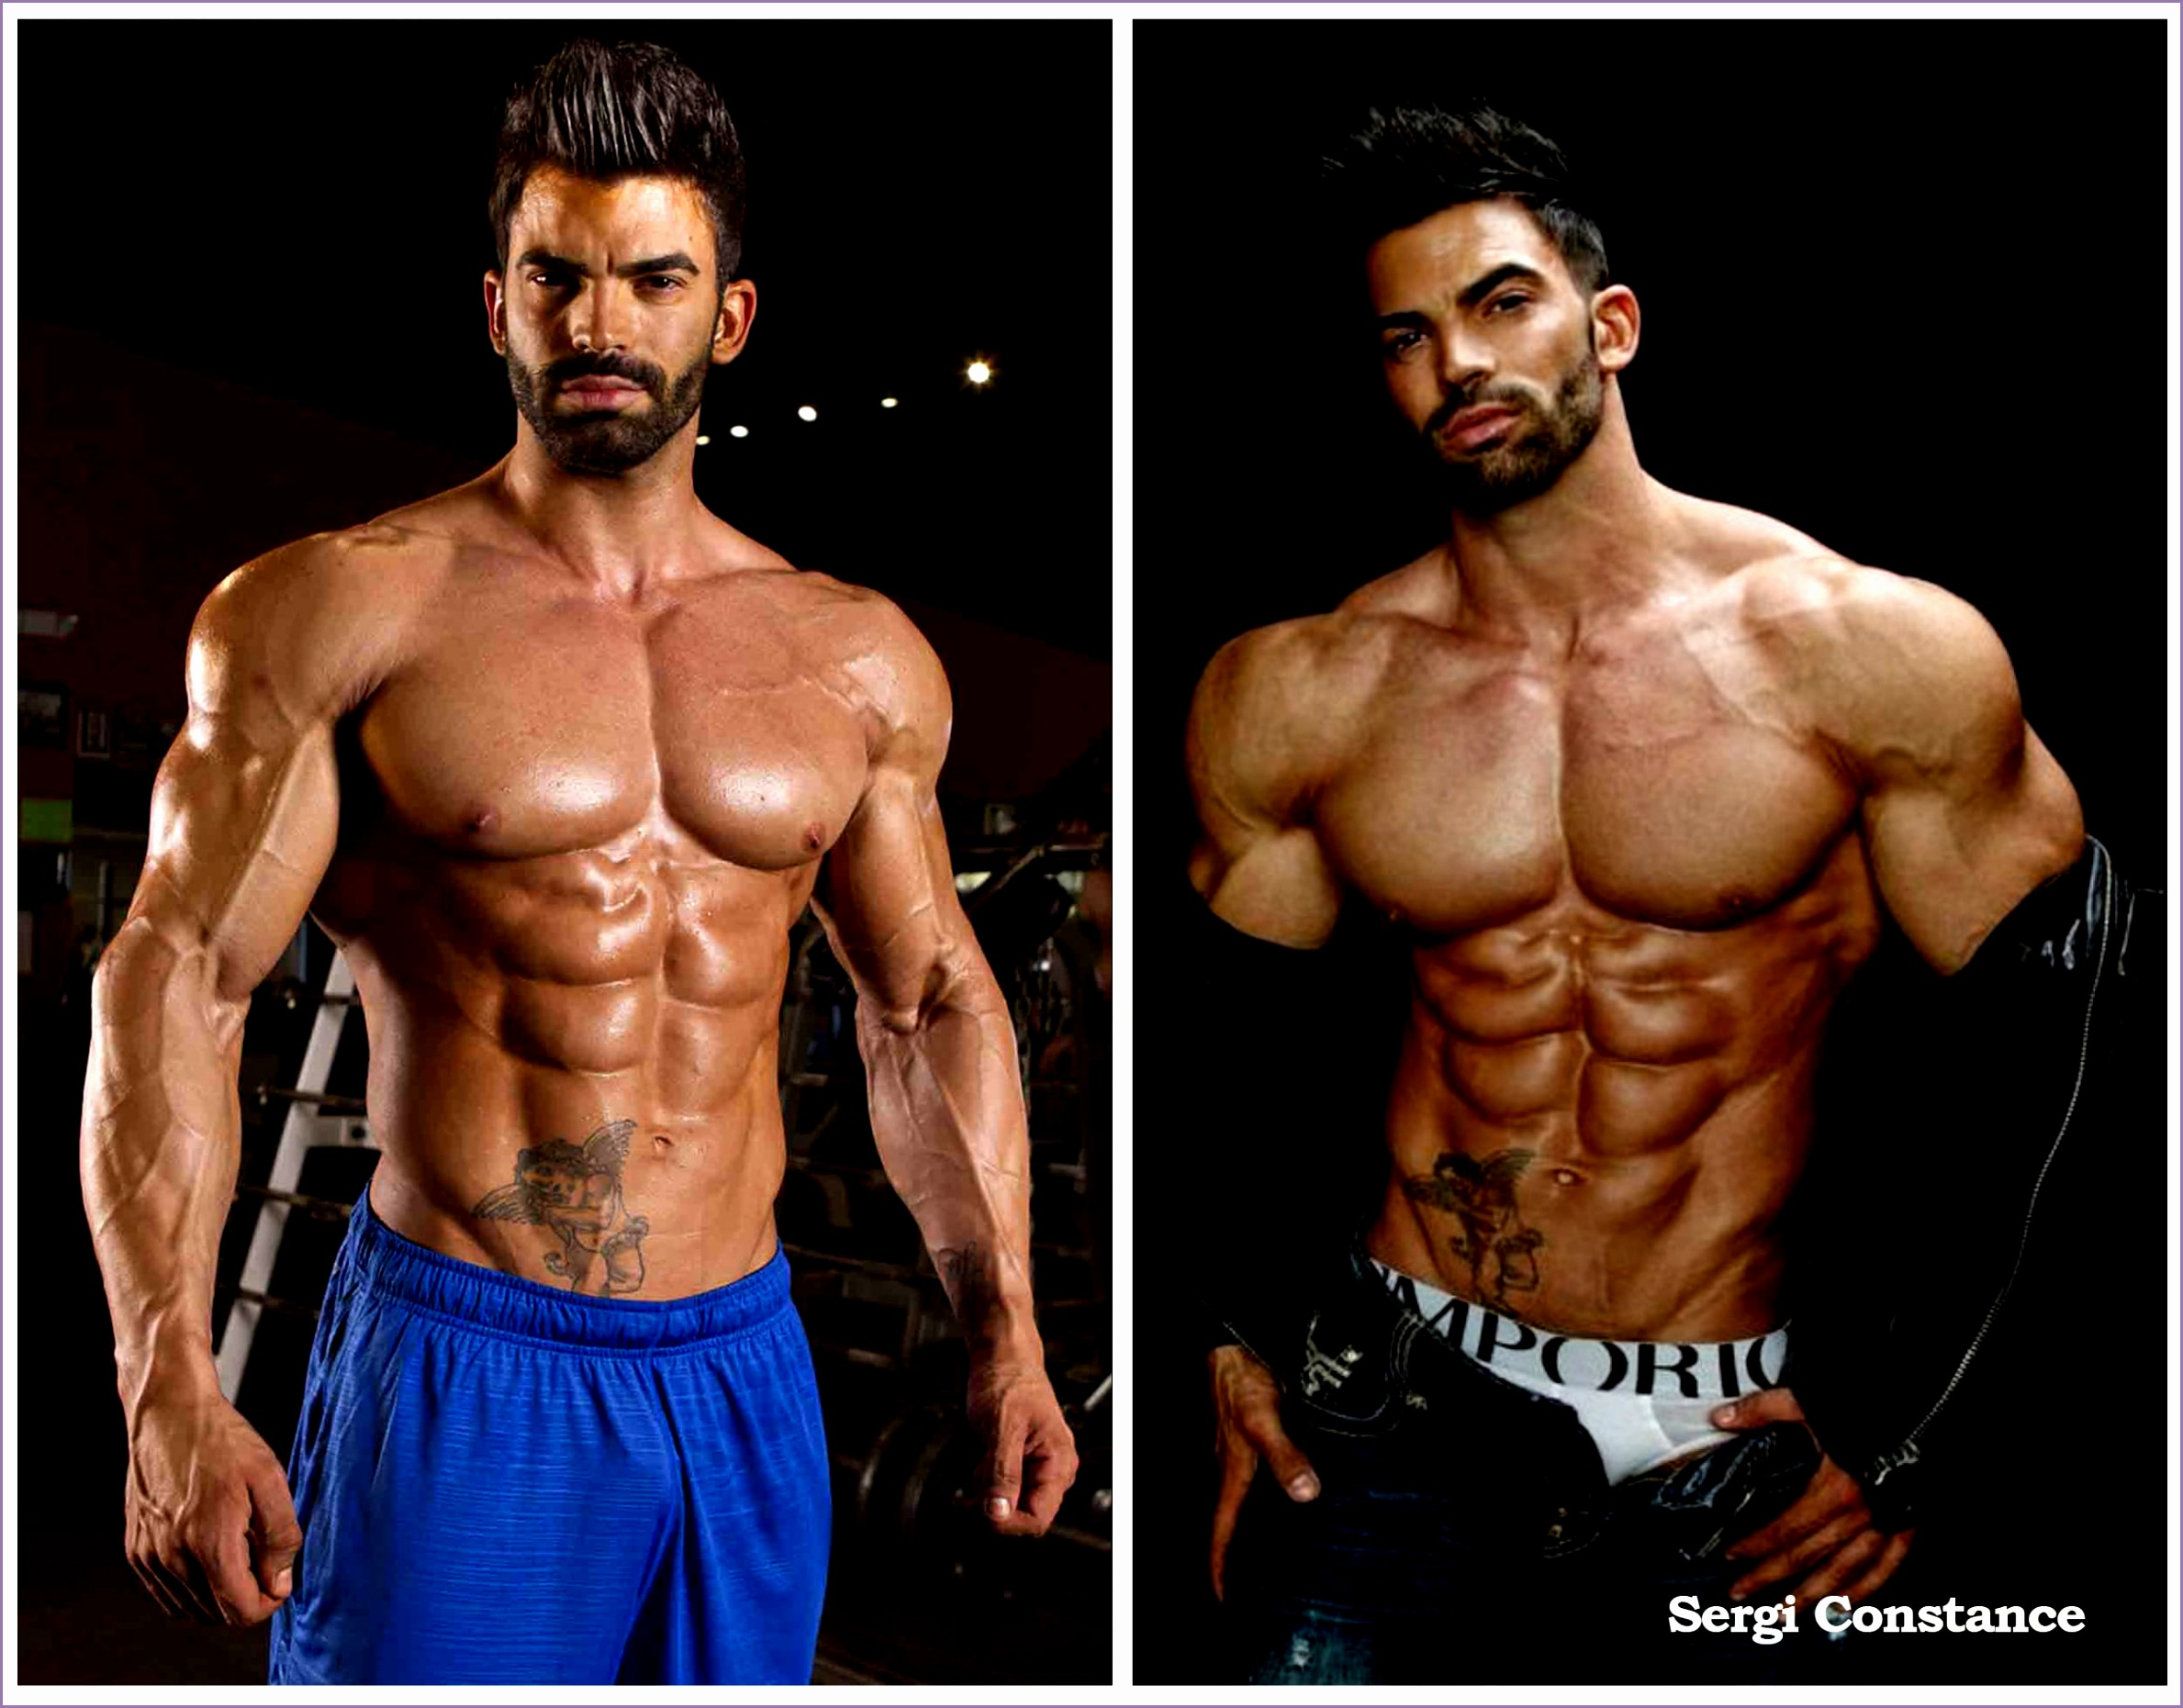 Within very short time he achieved the title of the best fitness model People started following him because of his determination